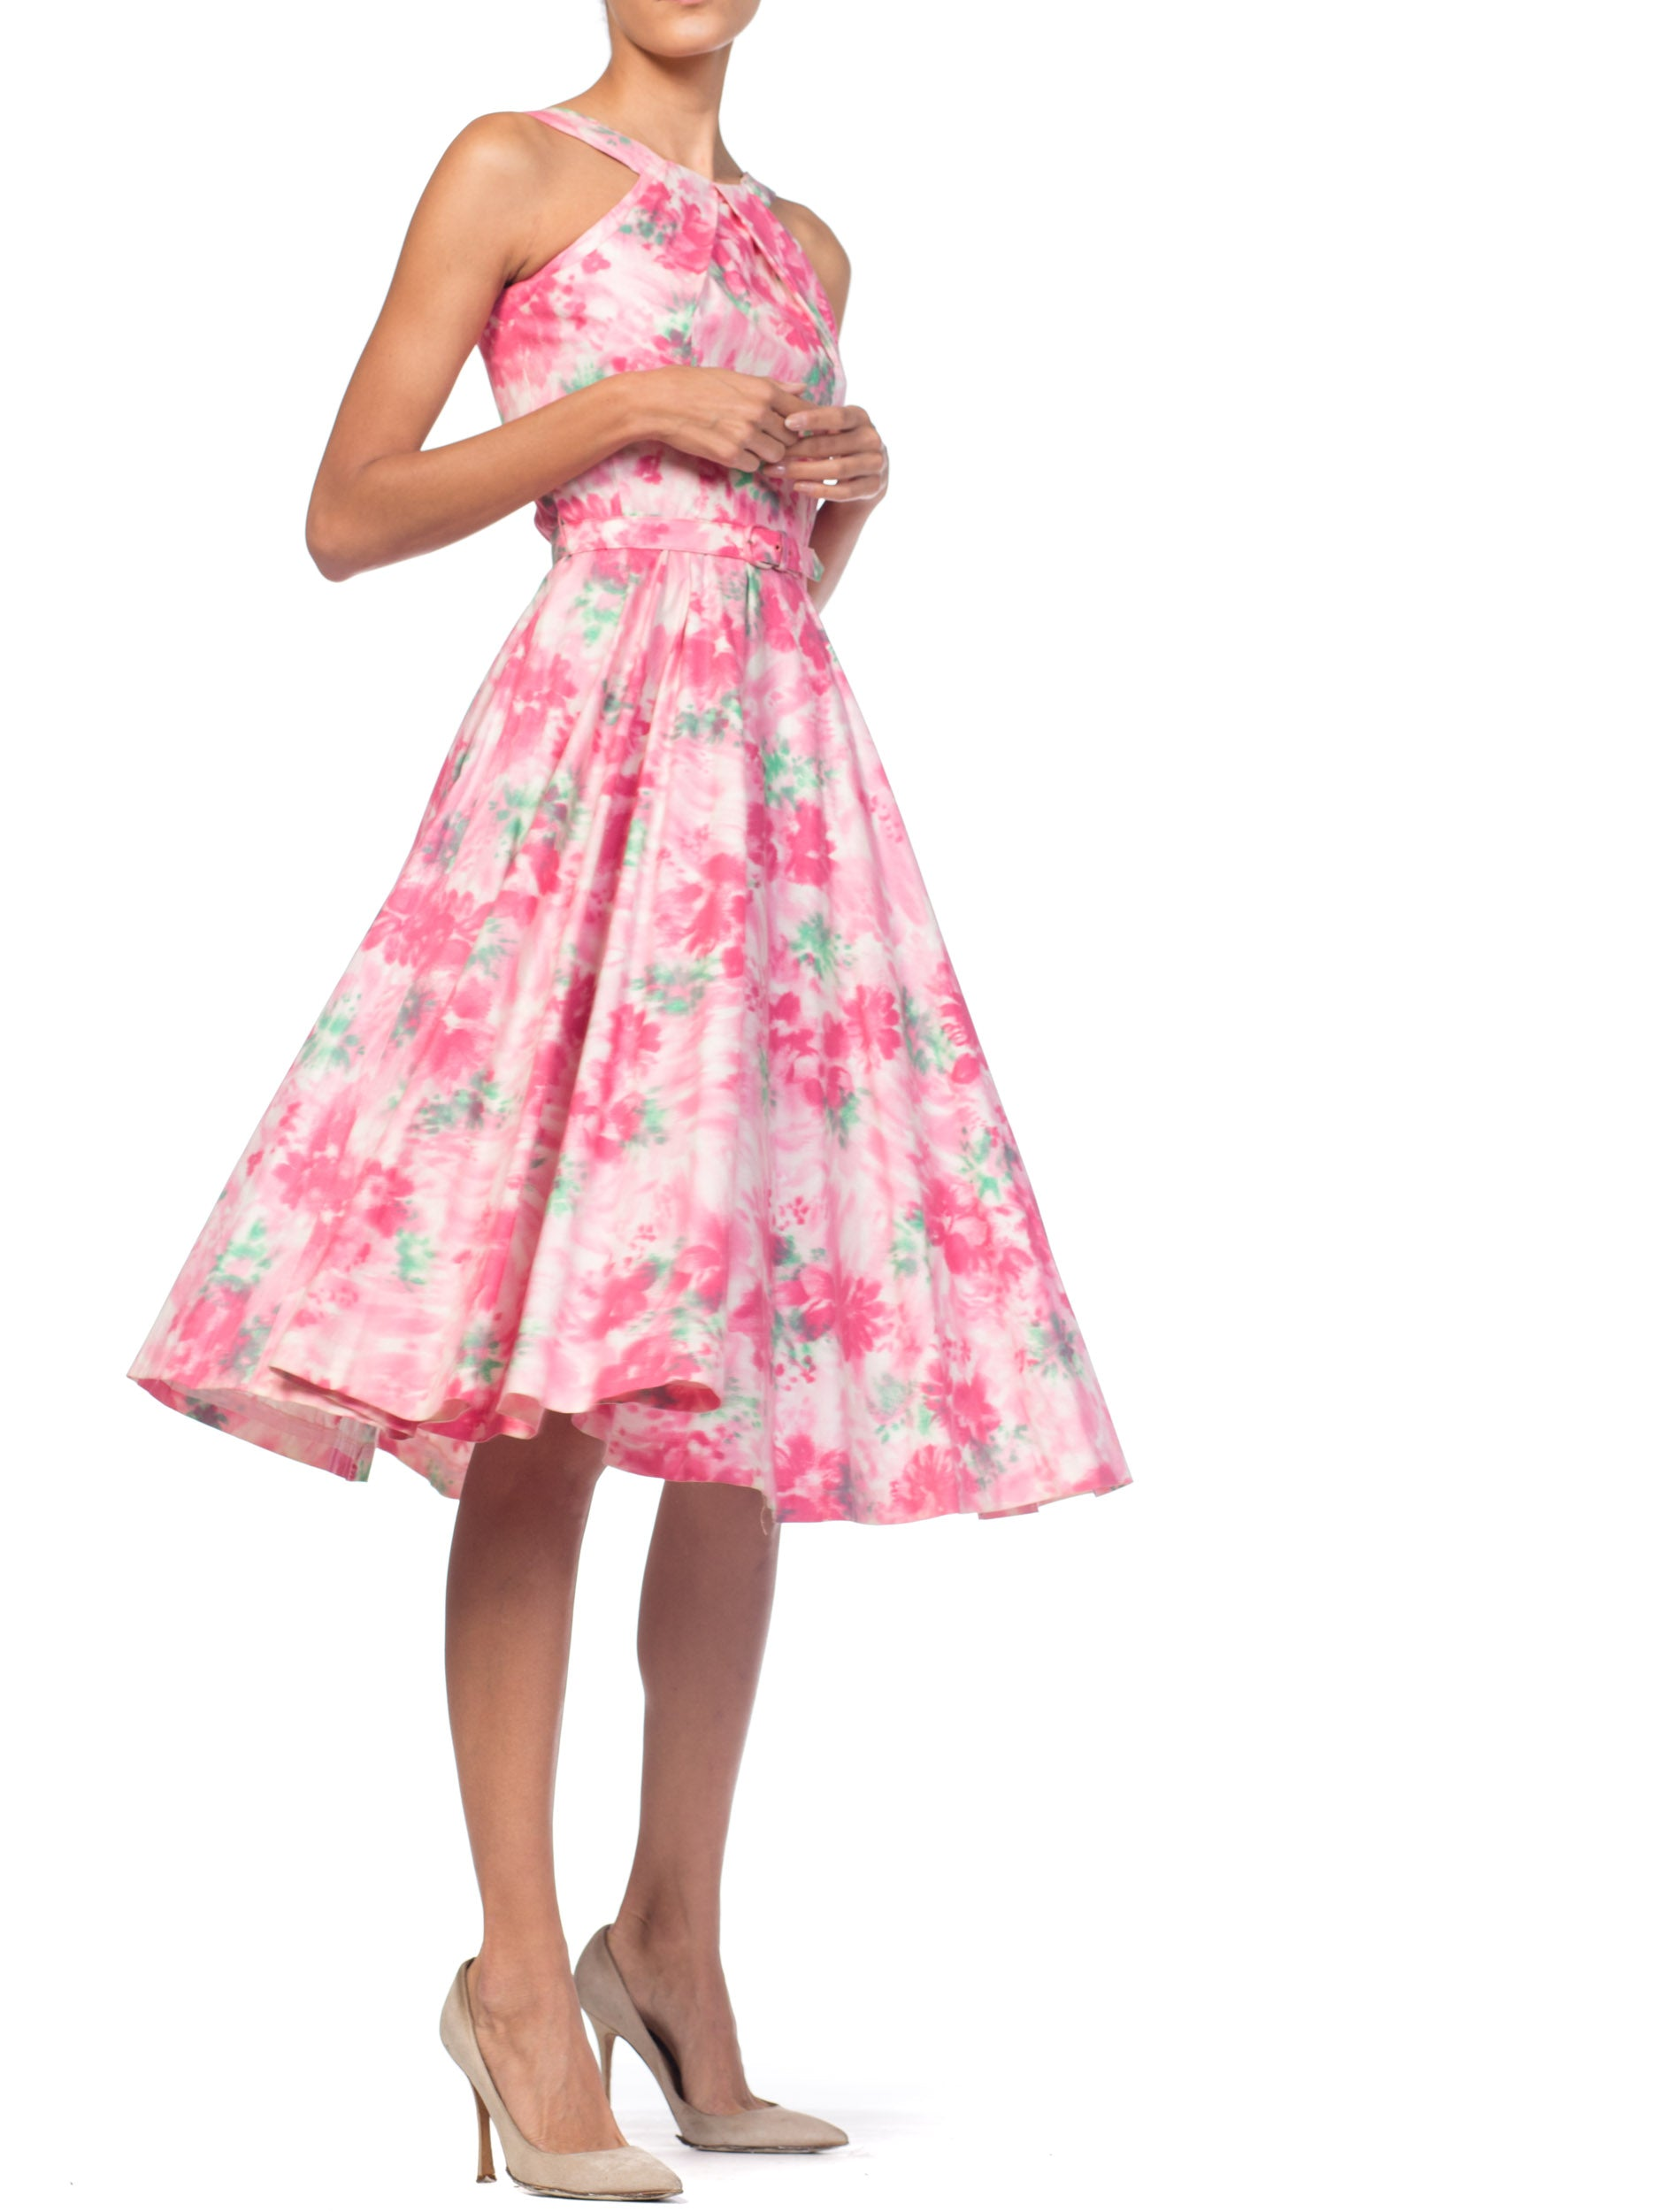 1950S Cotton Pastel Pink Watercolor Floral Circle Skirt Dress